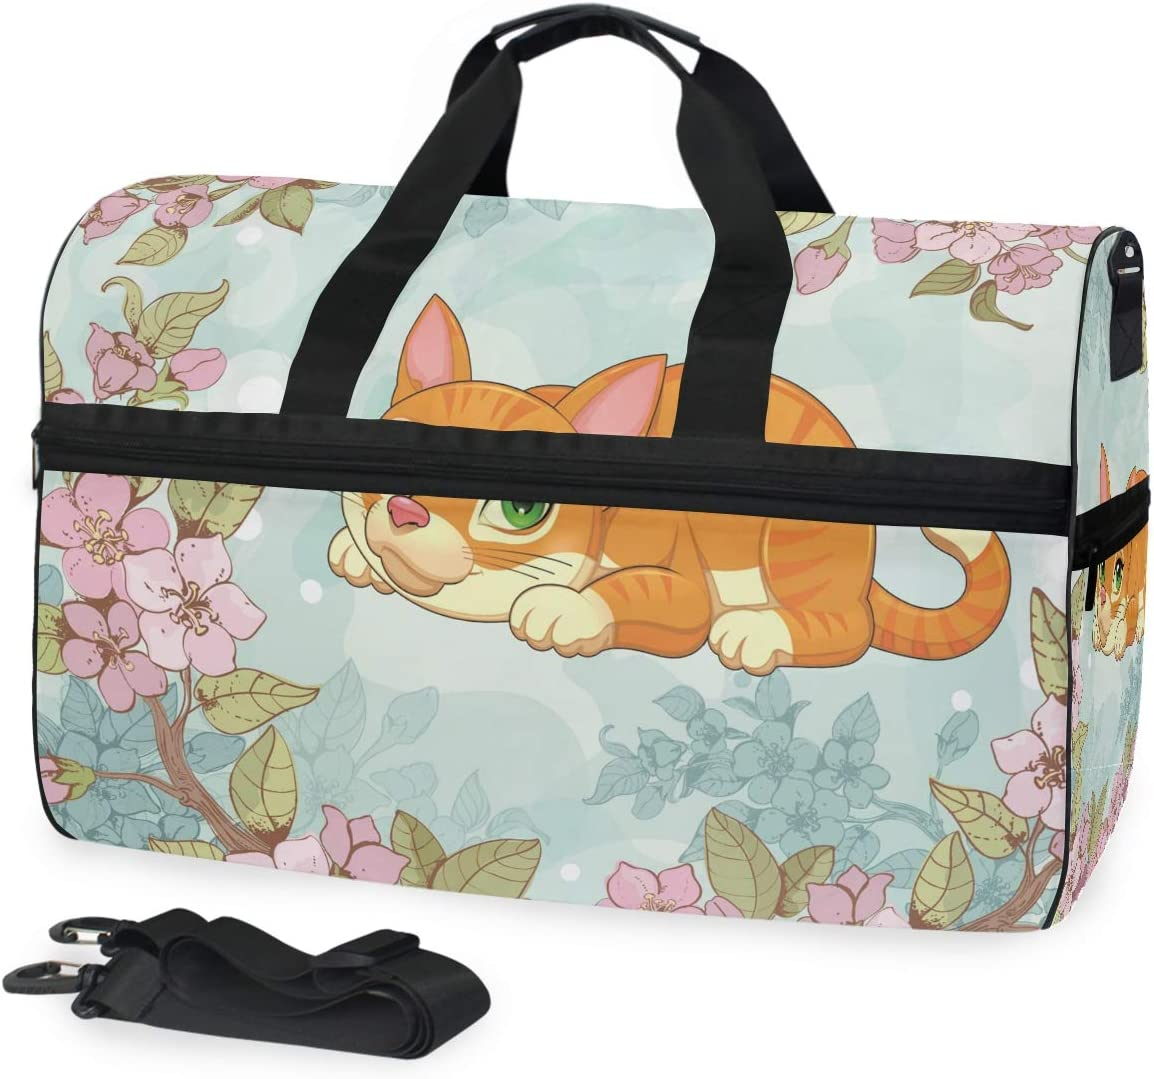 Sports Swim National products Gym Bag with Shoes Compartment Ranking TOP7 Flower Cat Kitty Week